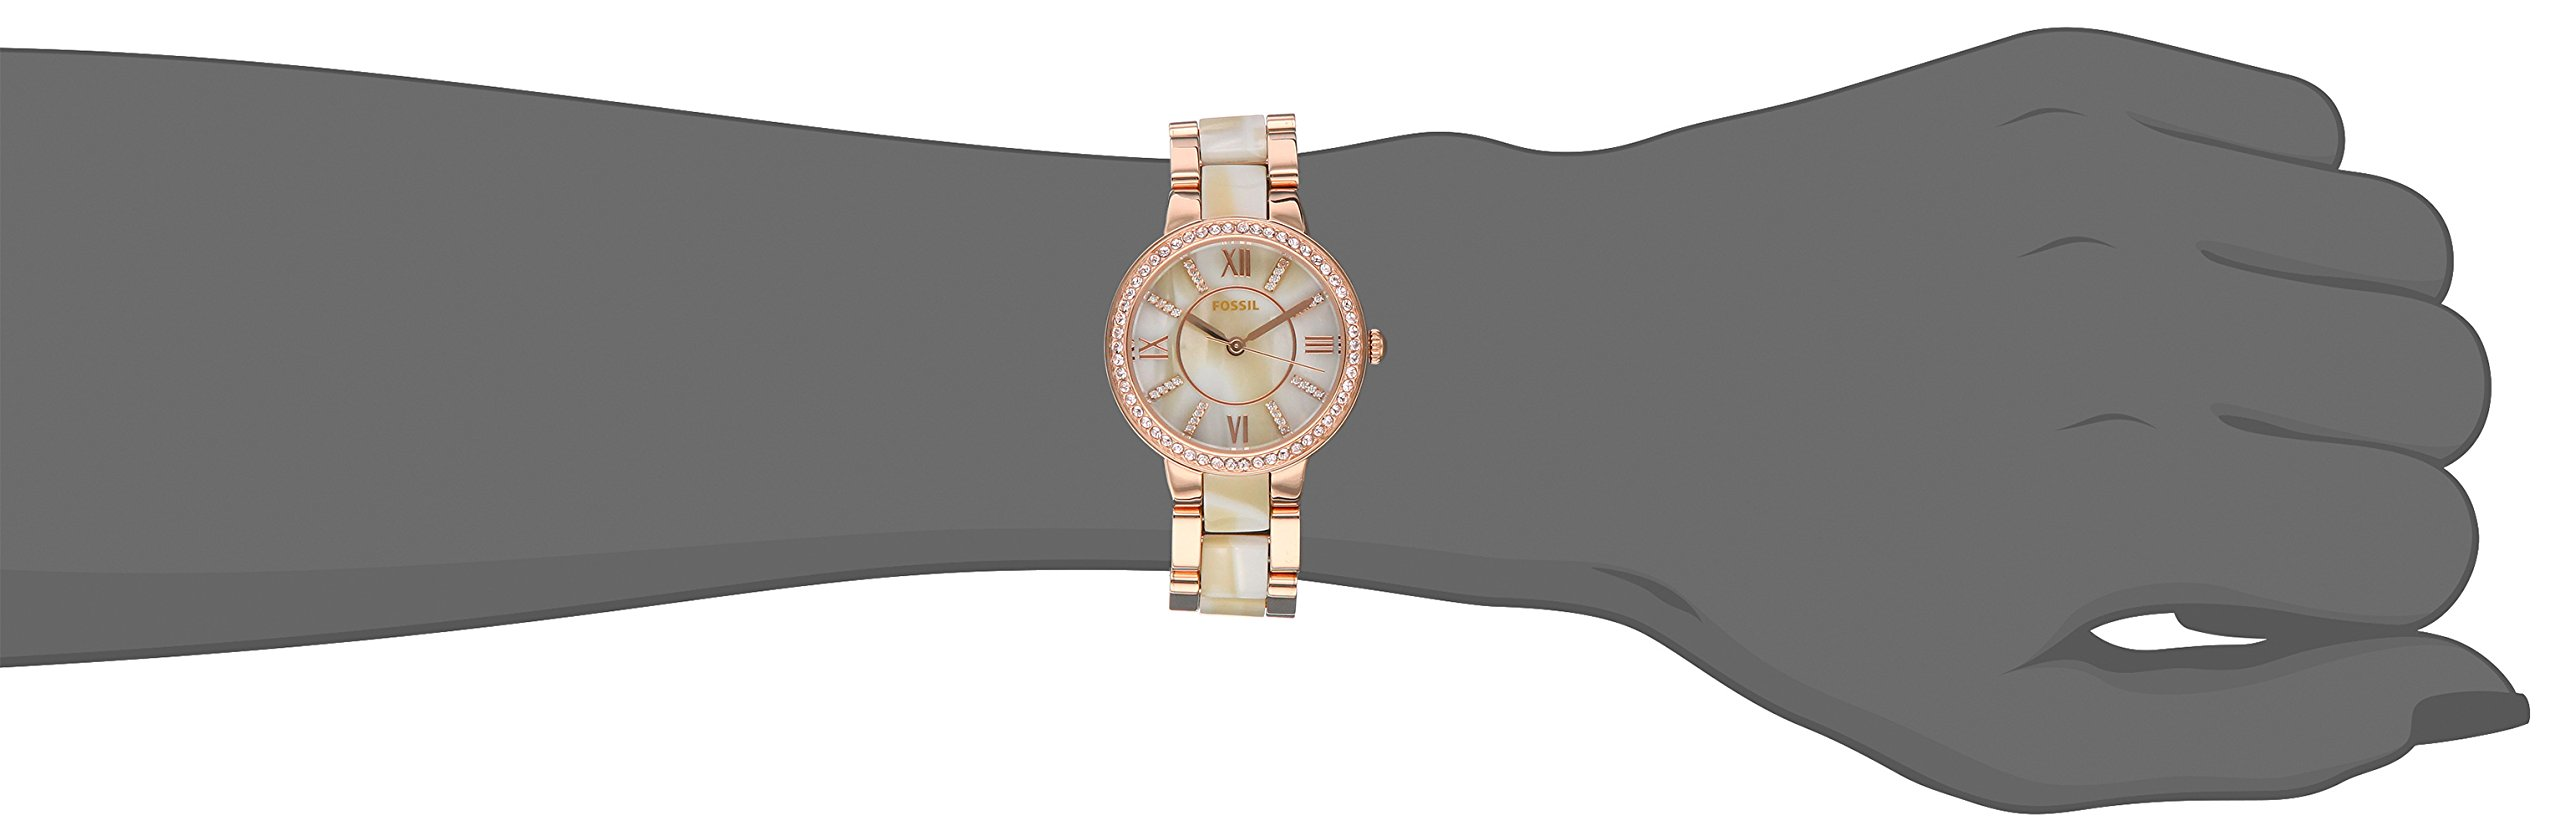 Fossil Women's Virginia Quartz Stainless Steel and Horn Acetate Dress Watch, Color: Rose Gold-Tone (Model: ES3716) by Fossil (Image #3)